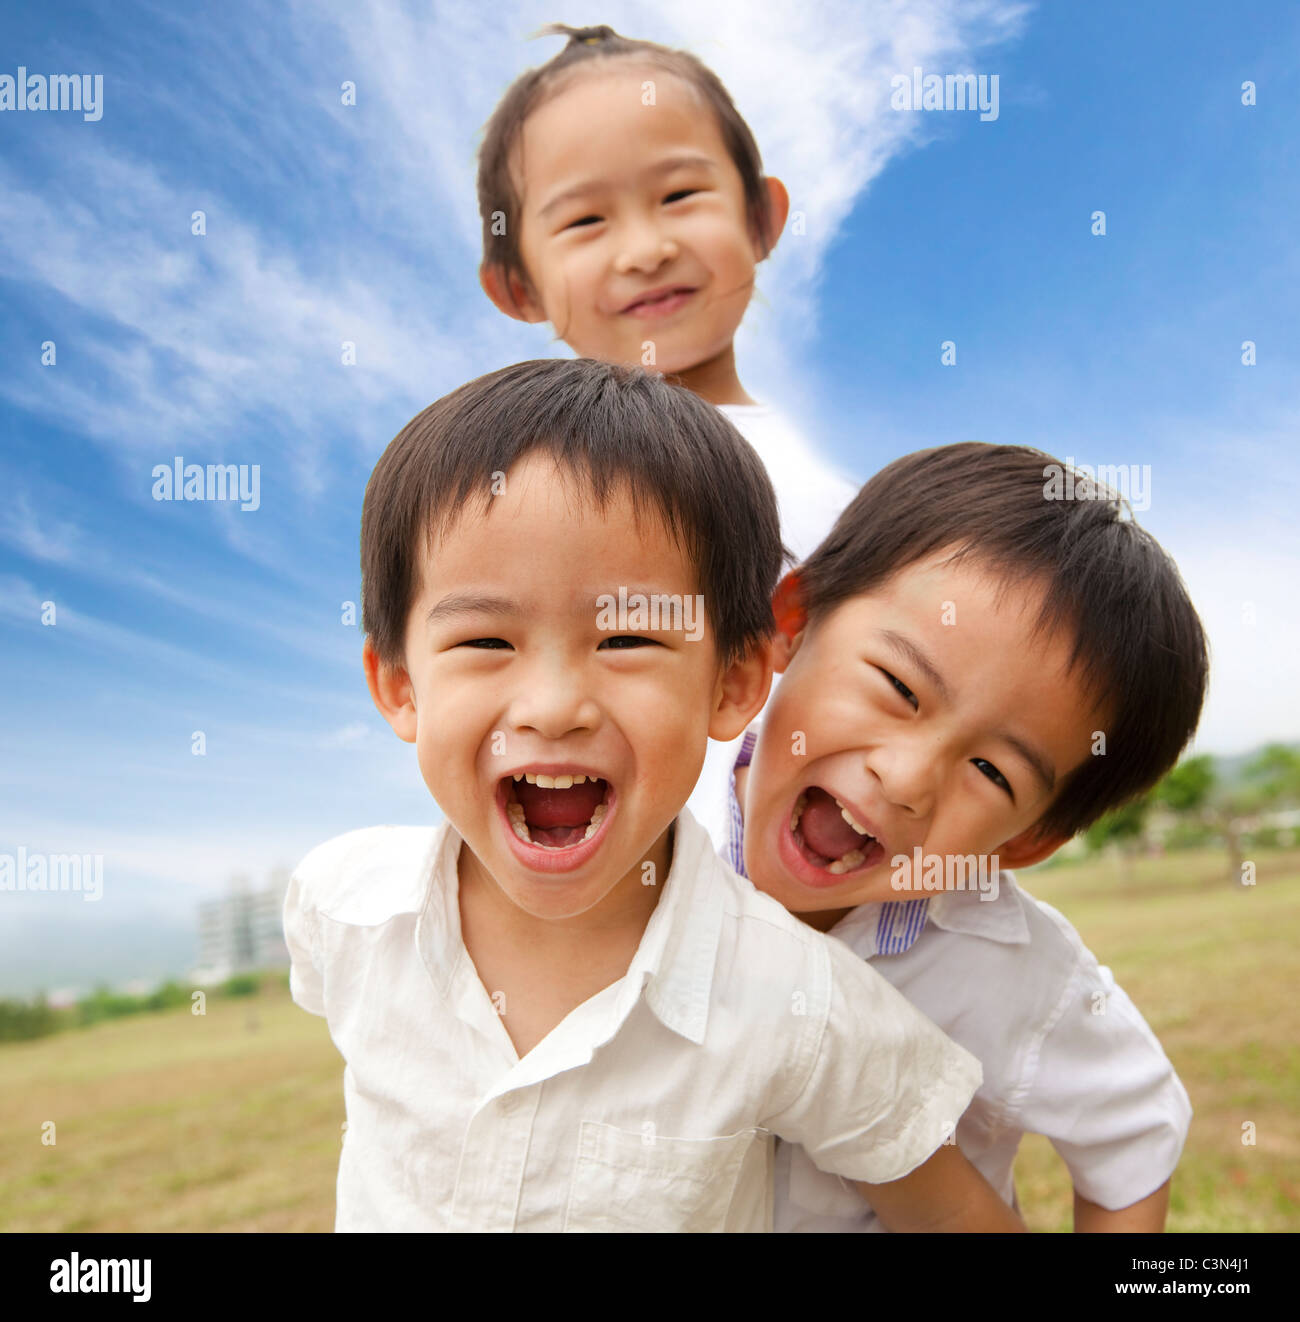 Portrait of happy kids outdoor Photo Stock